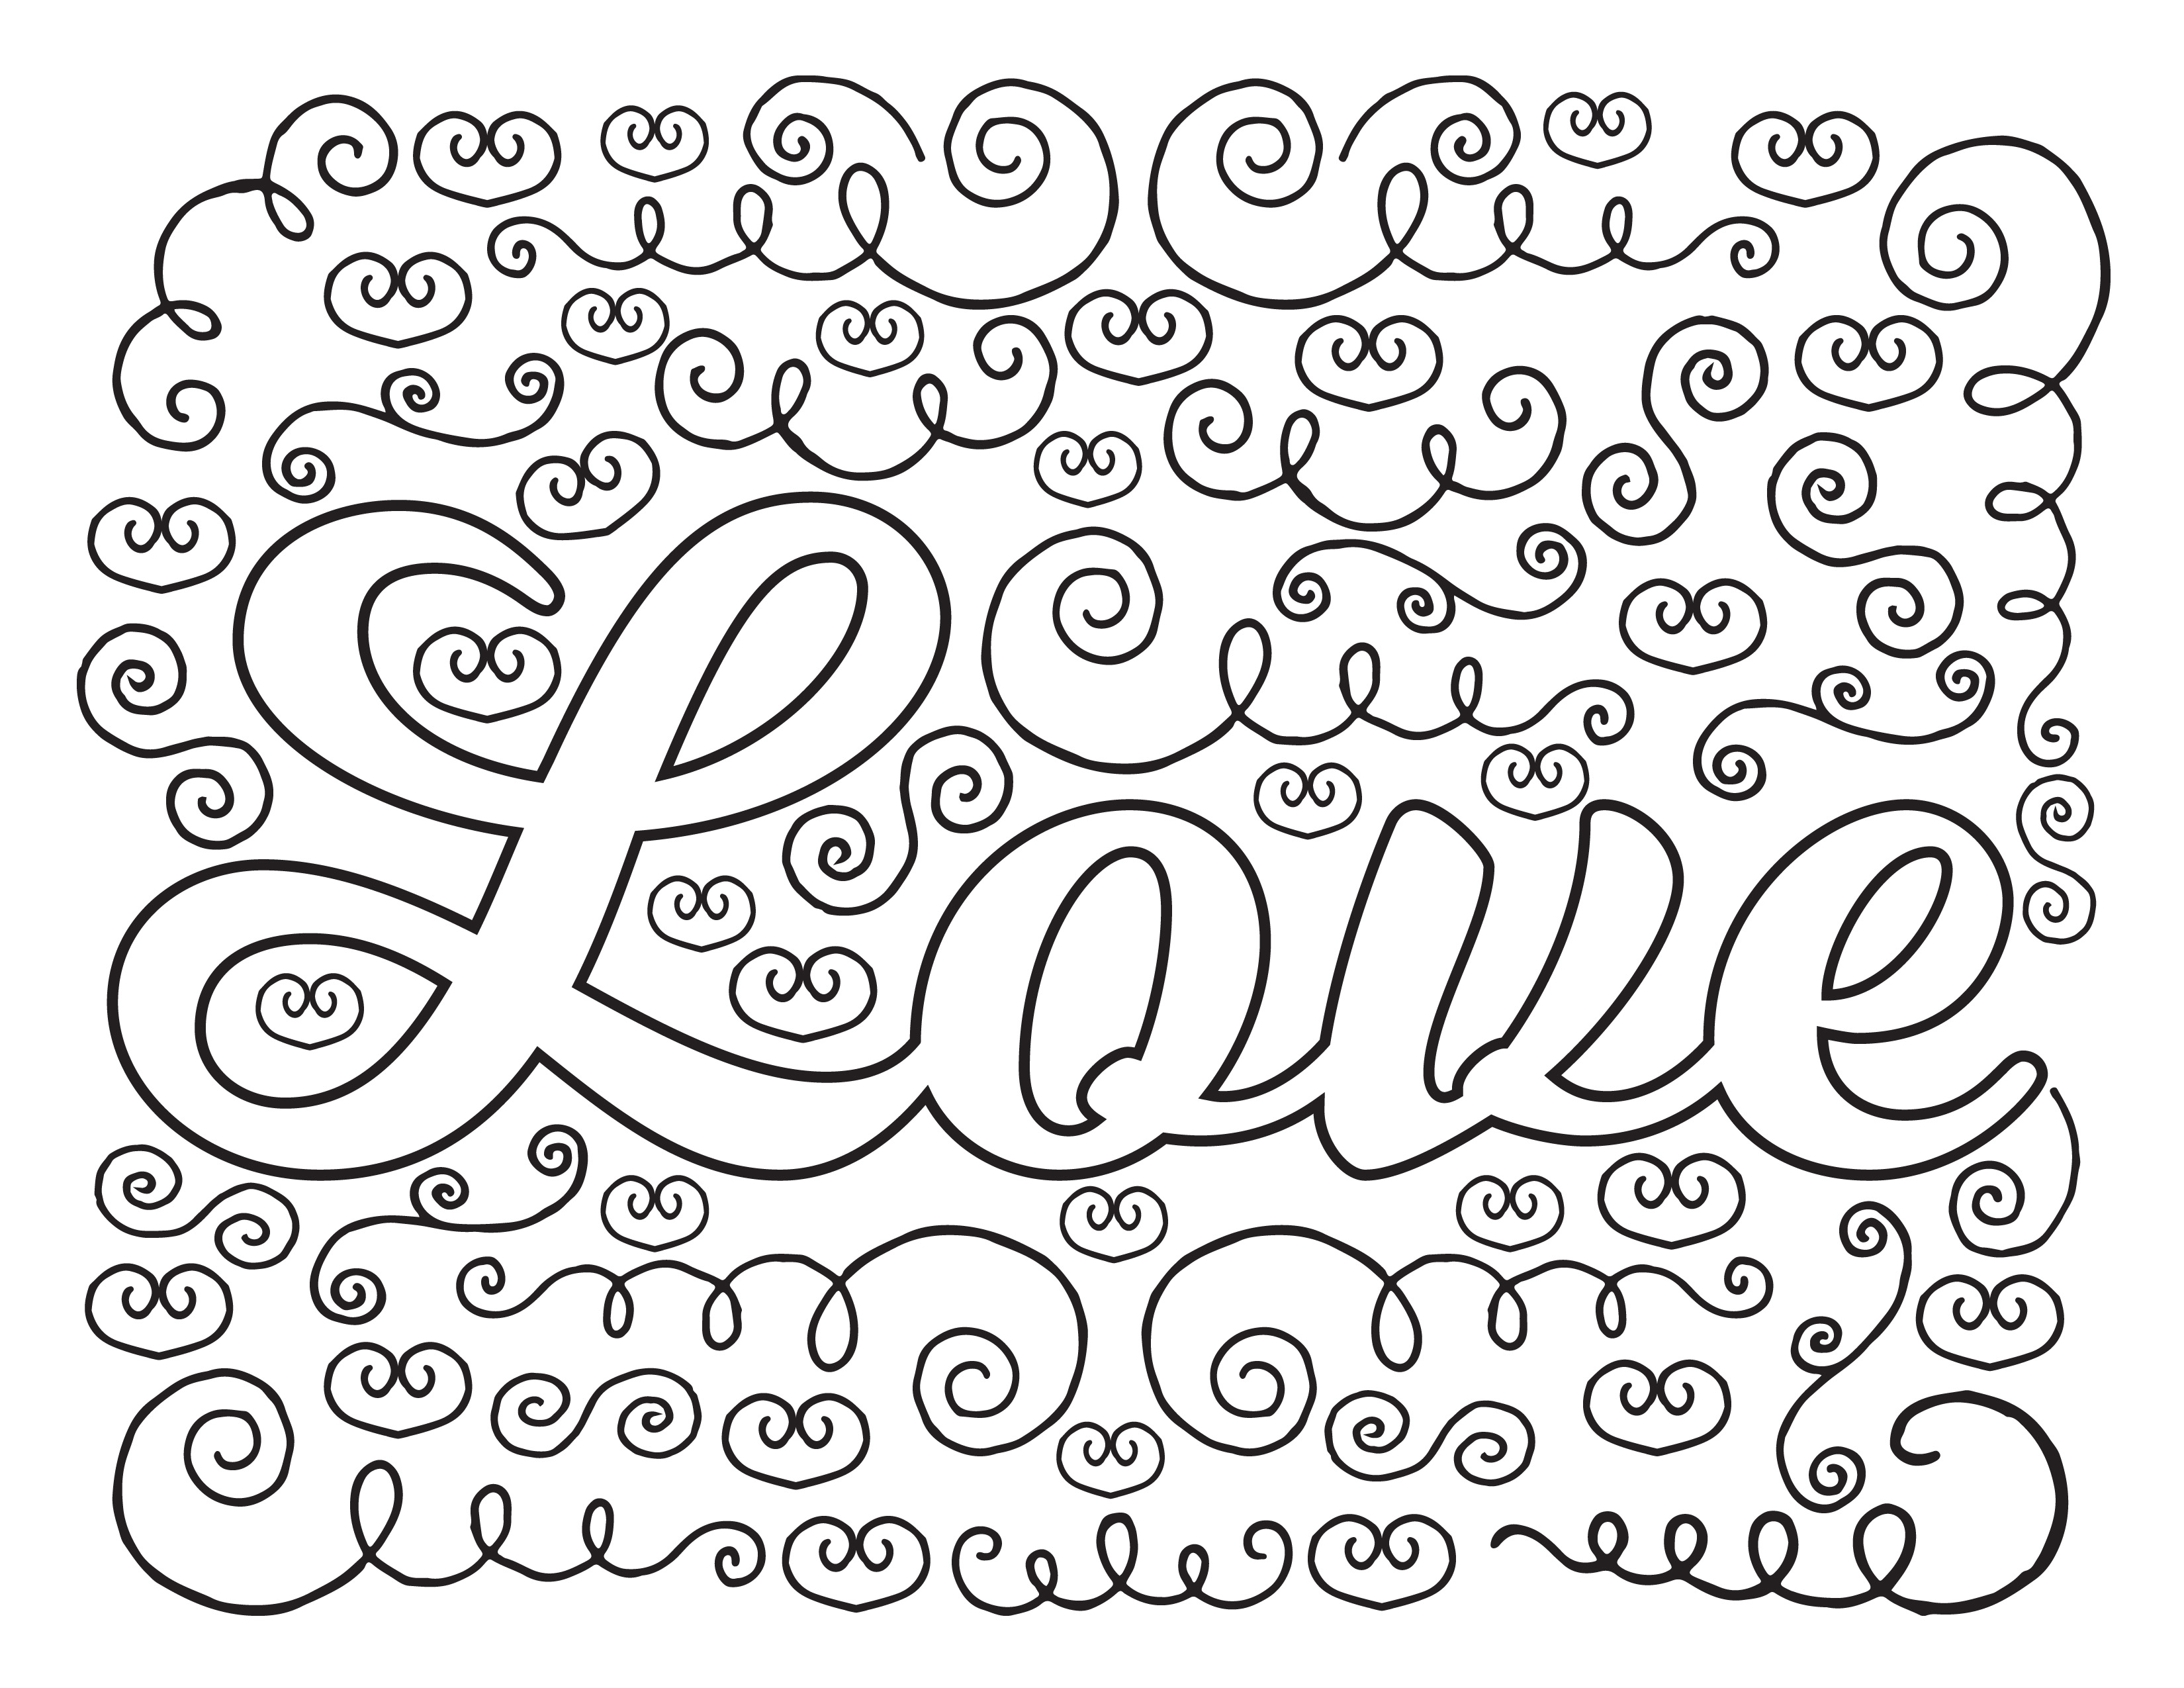 The Word Love Coloring Pages at GetDrawings.com | Free for ...